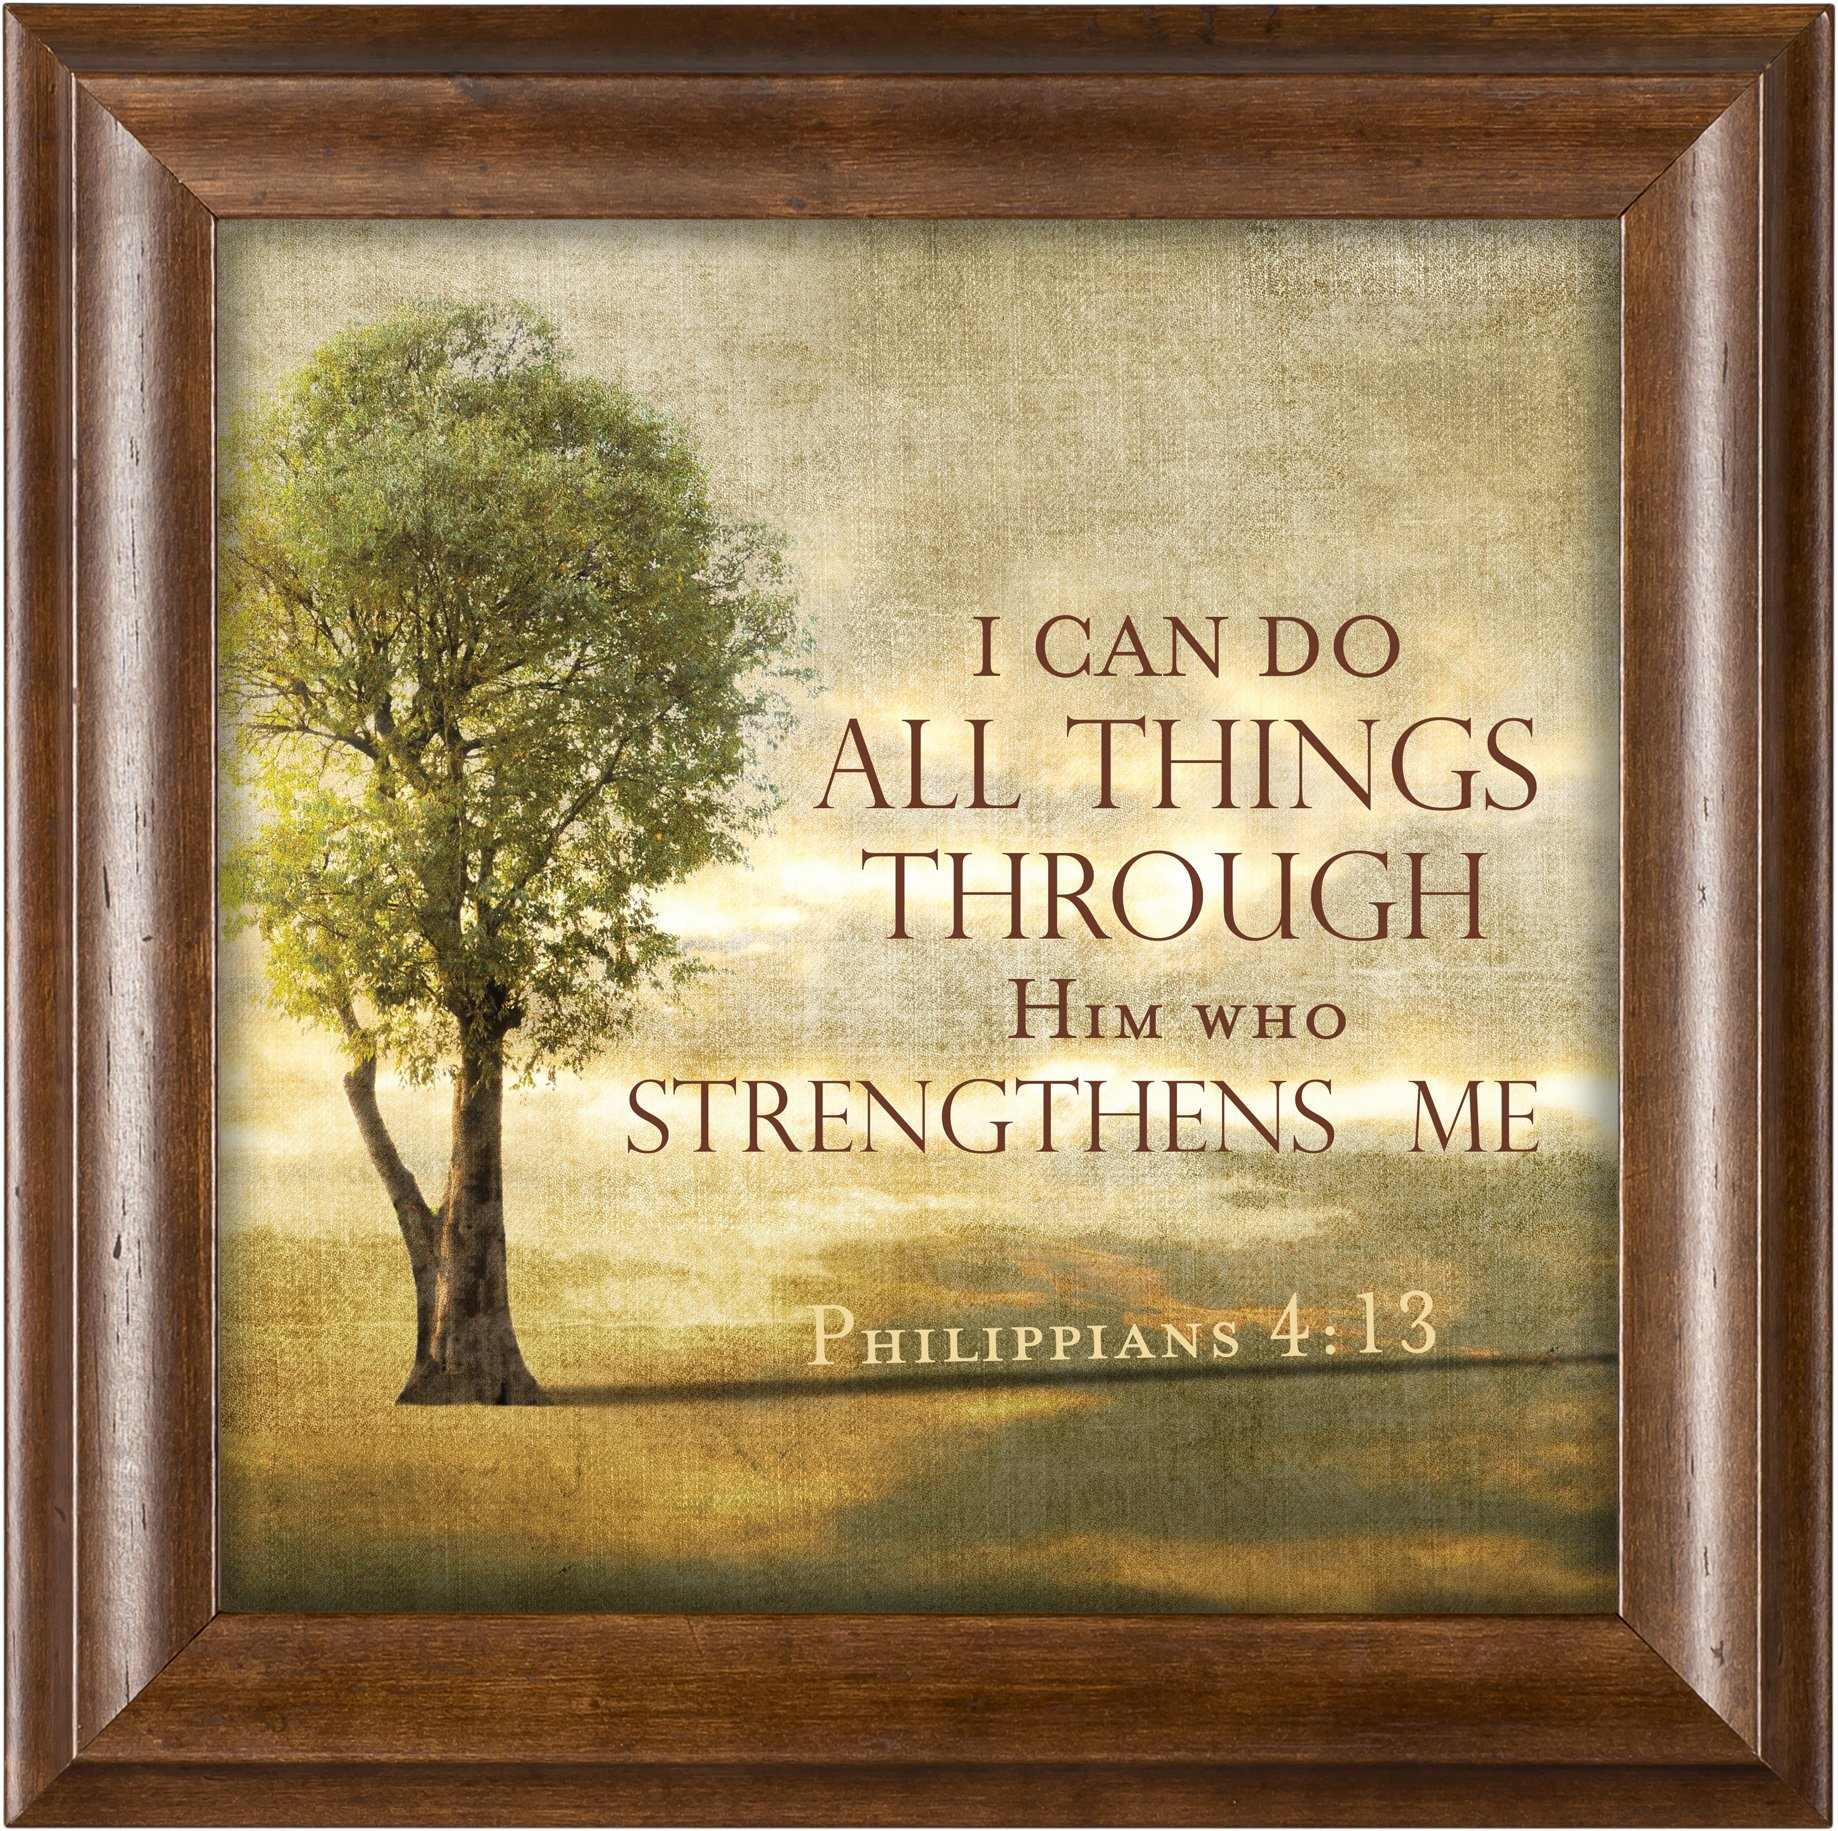 Him Who Strengthens Me Tree on a Hill Phil. 4:13 Wood Finish 12 x 12 Framed Art Wall Plaque by Elanze Designs